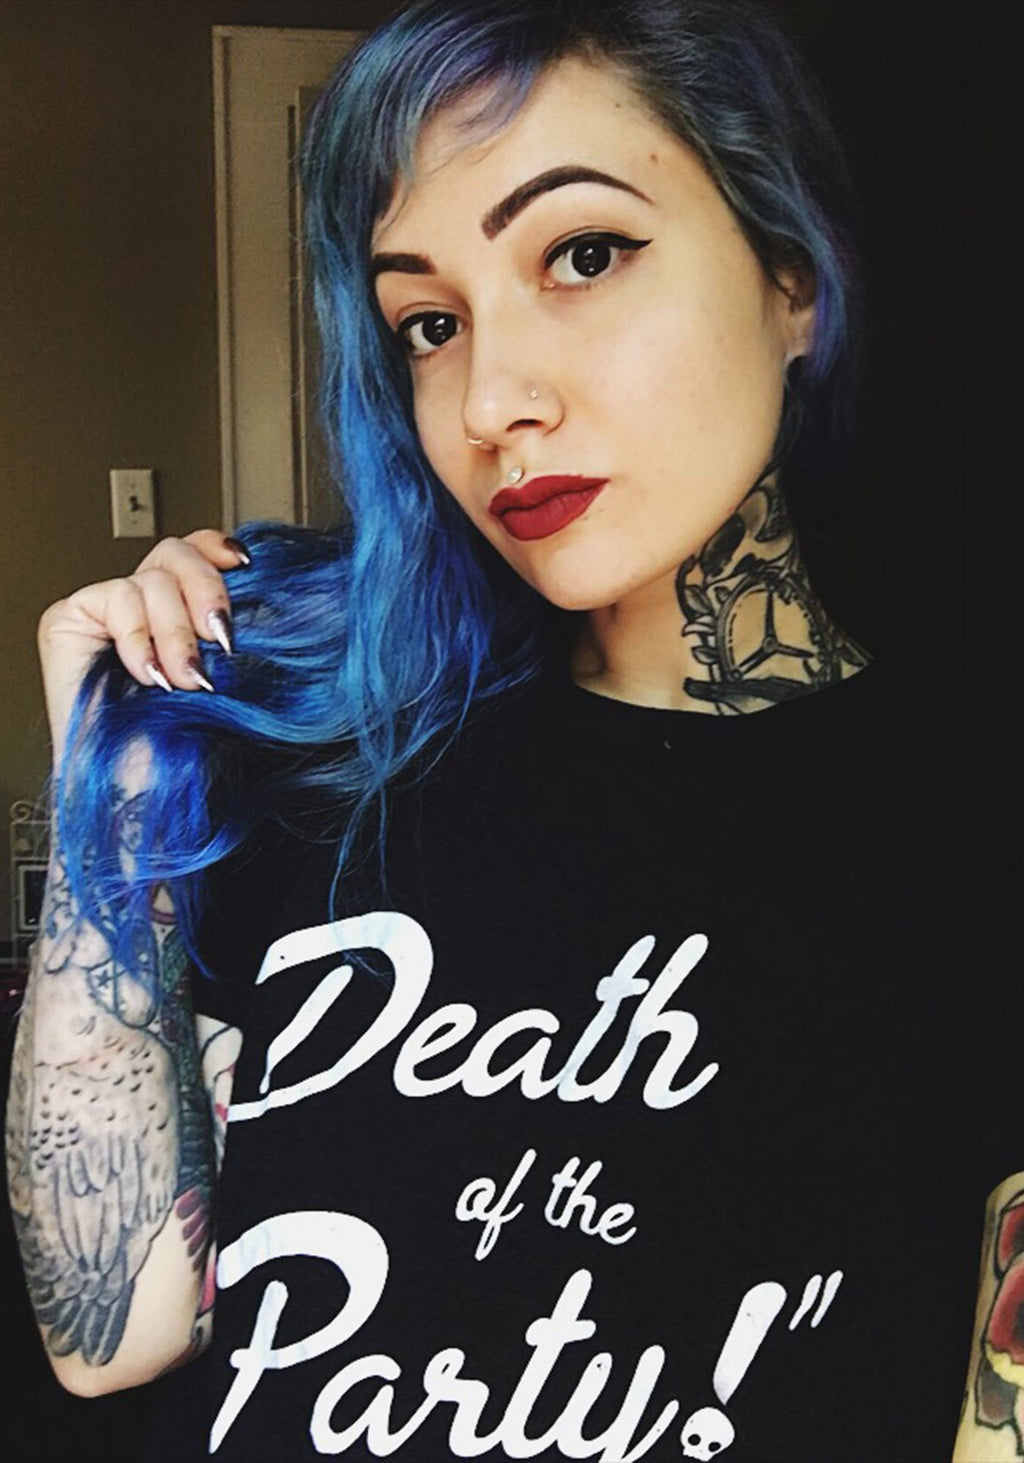 Death of the Party! Tee / witch clothing tshirt / womens graphic tees / halloween shirt women / cute ghost ghoul skull dead witchy gifts